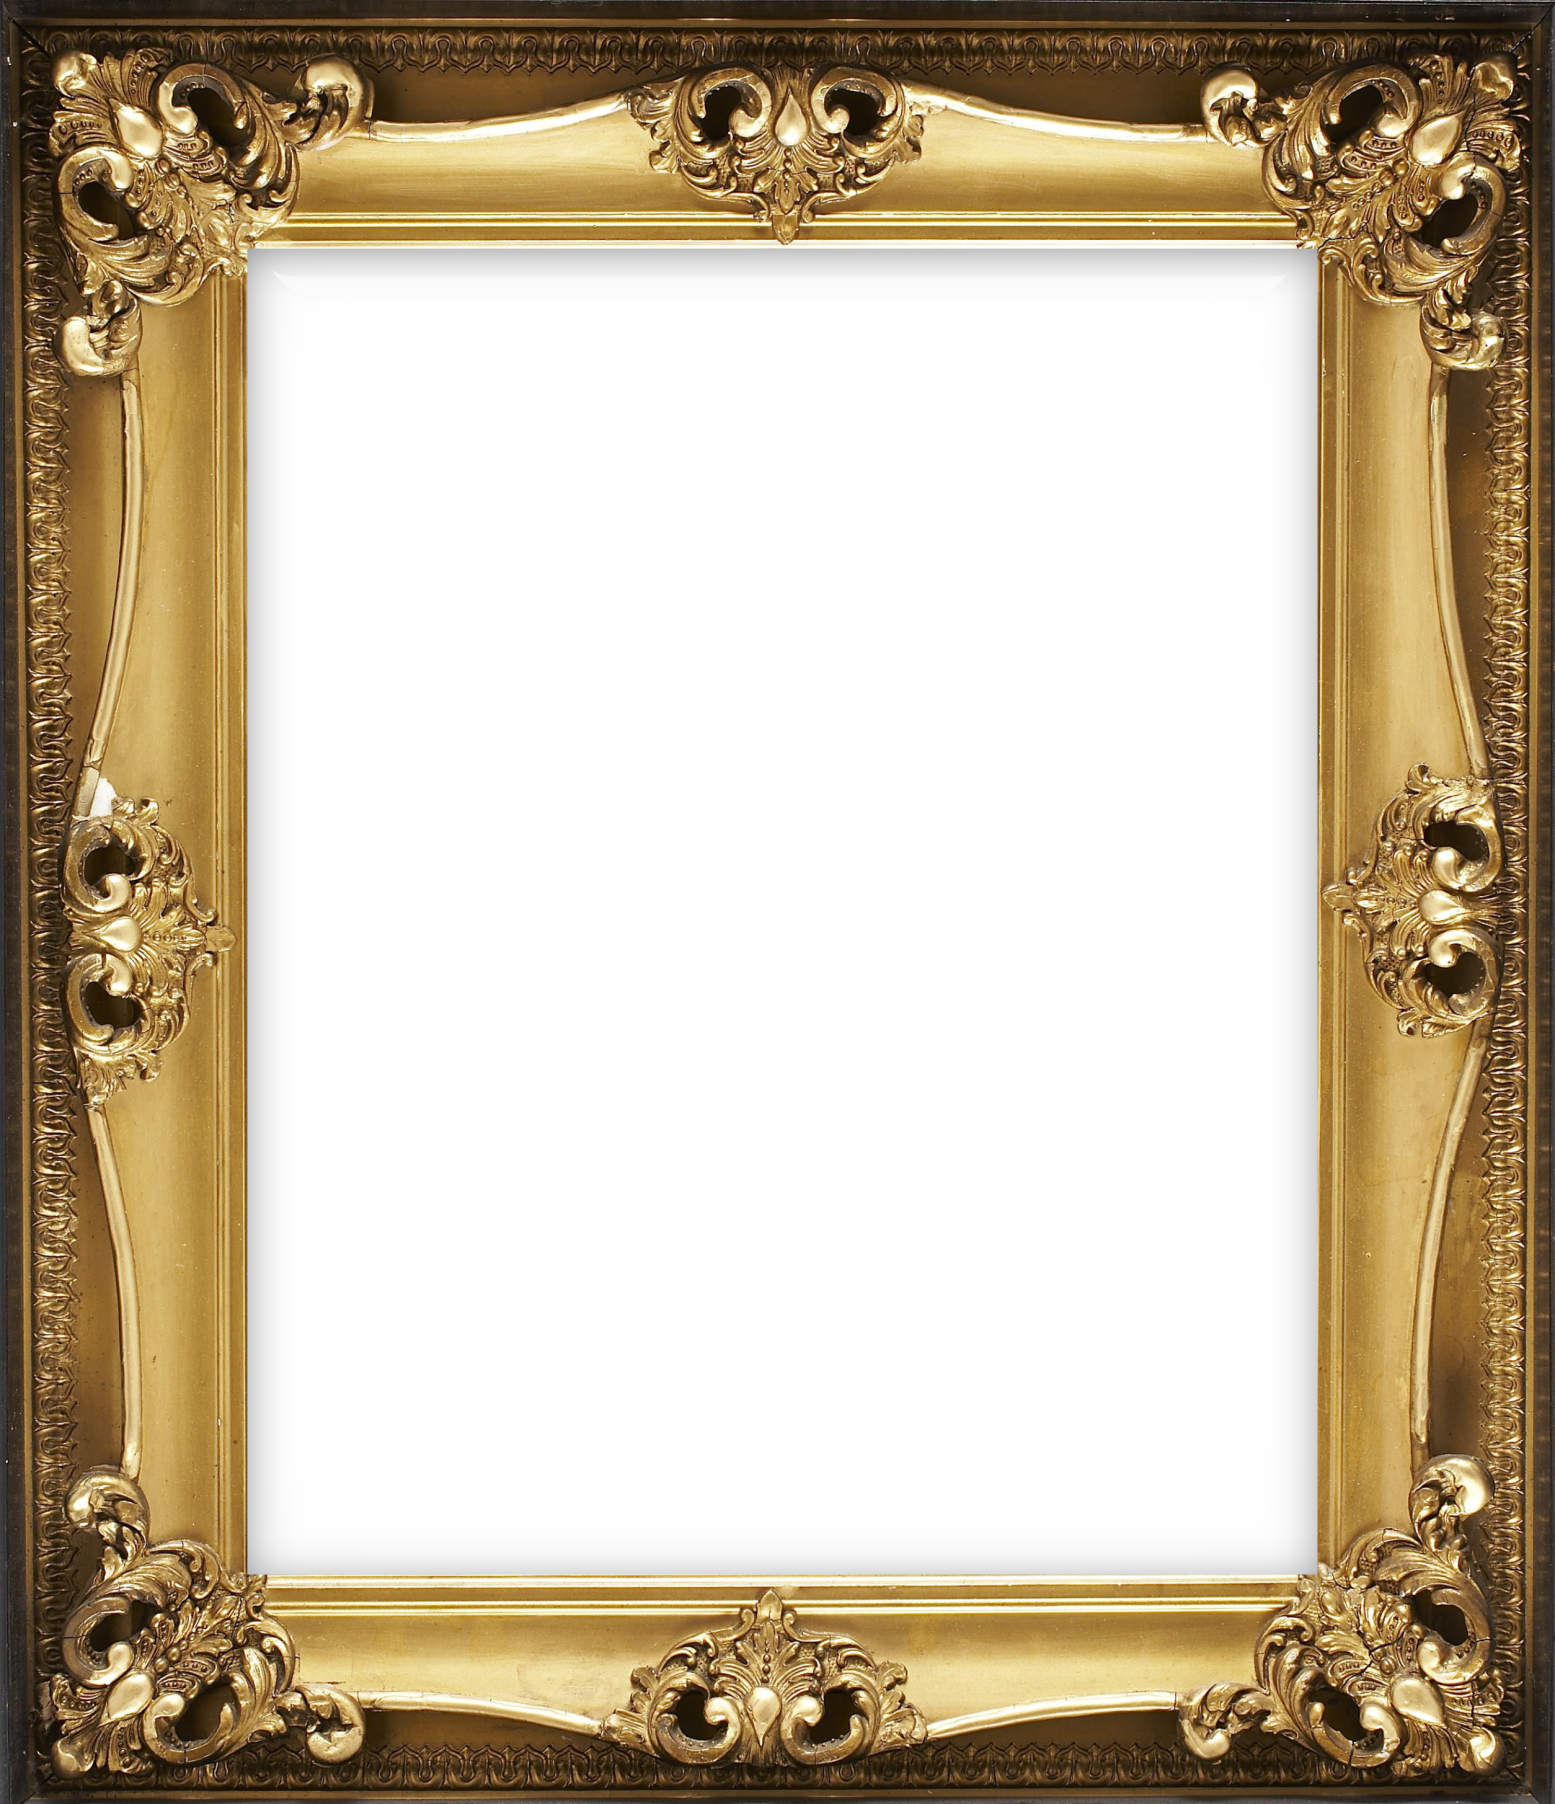 Vertical Classic Transparent Frame with Ornaments.